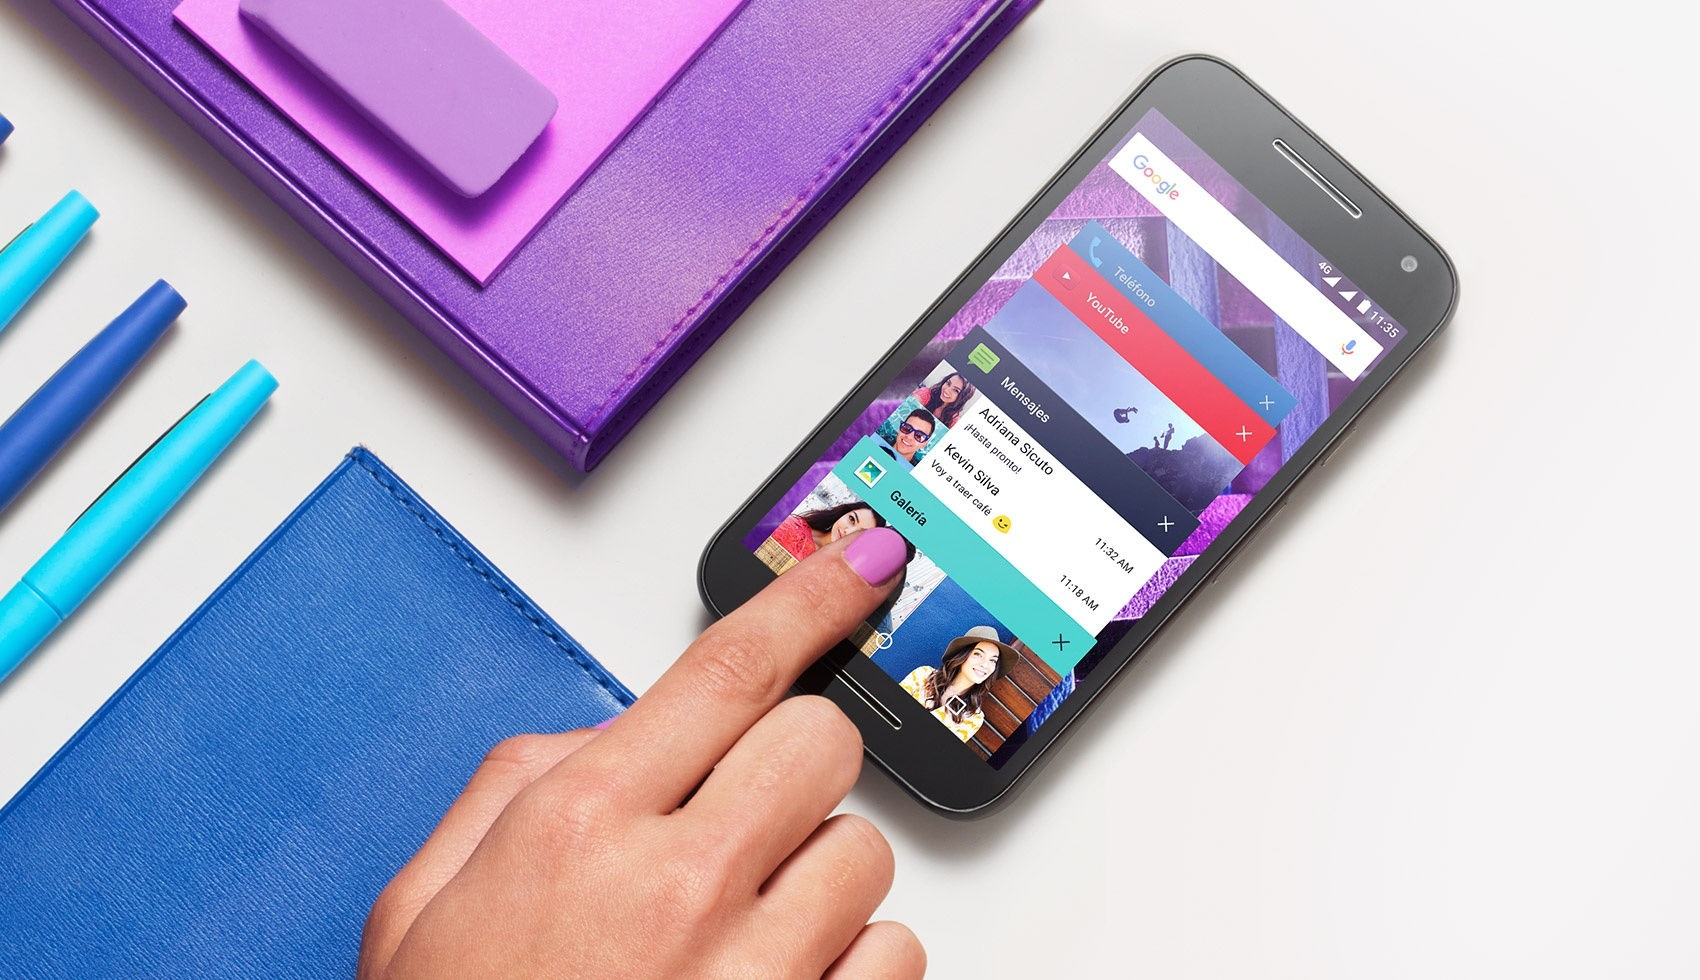 moto g usb driver for pc